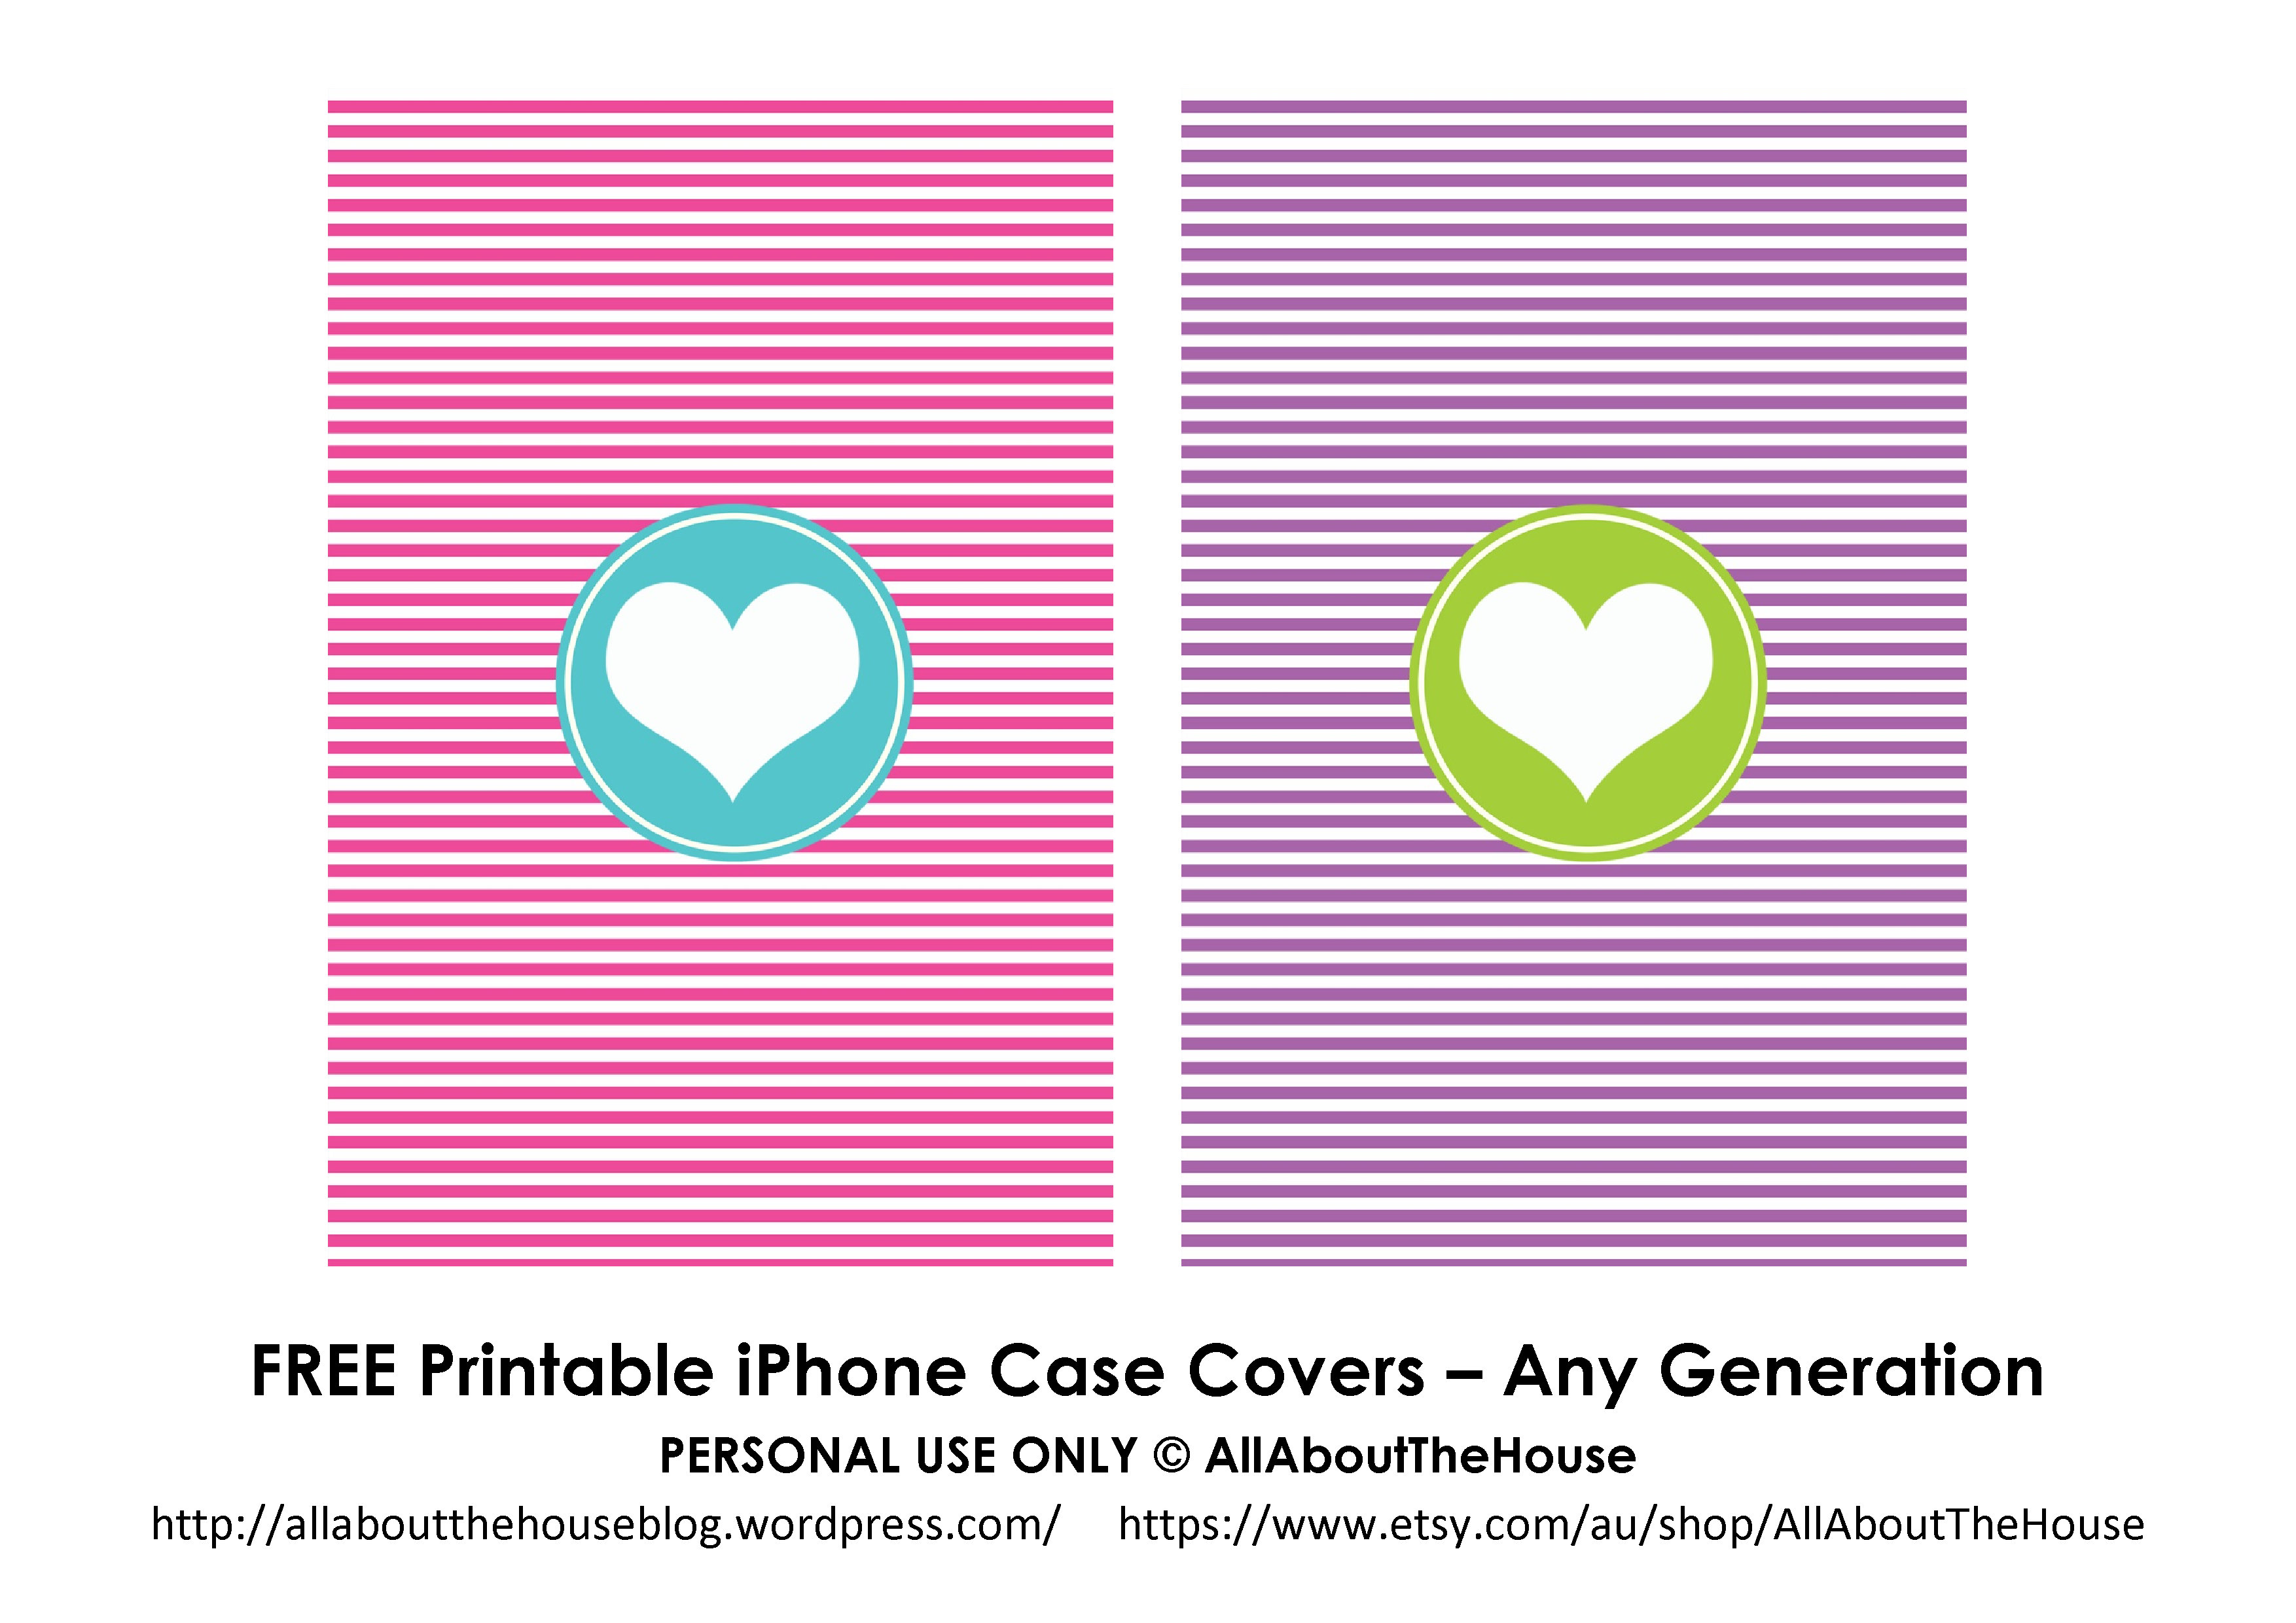 iPhone case covers - AllAboutTheHouse3